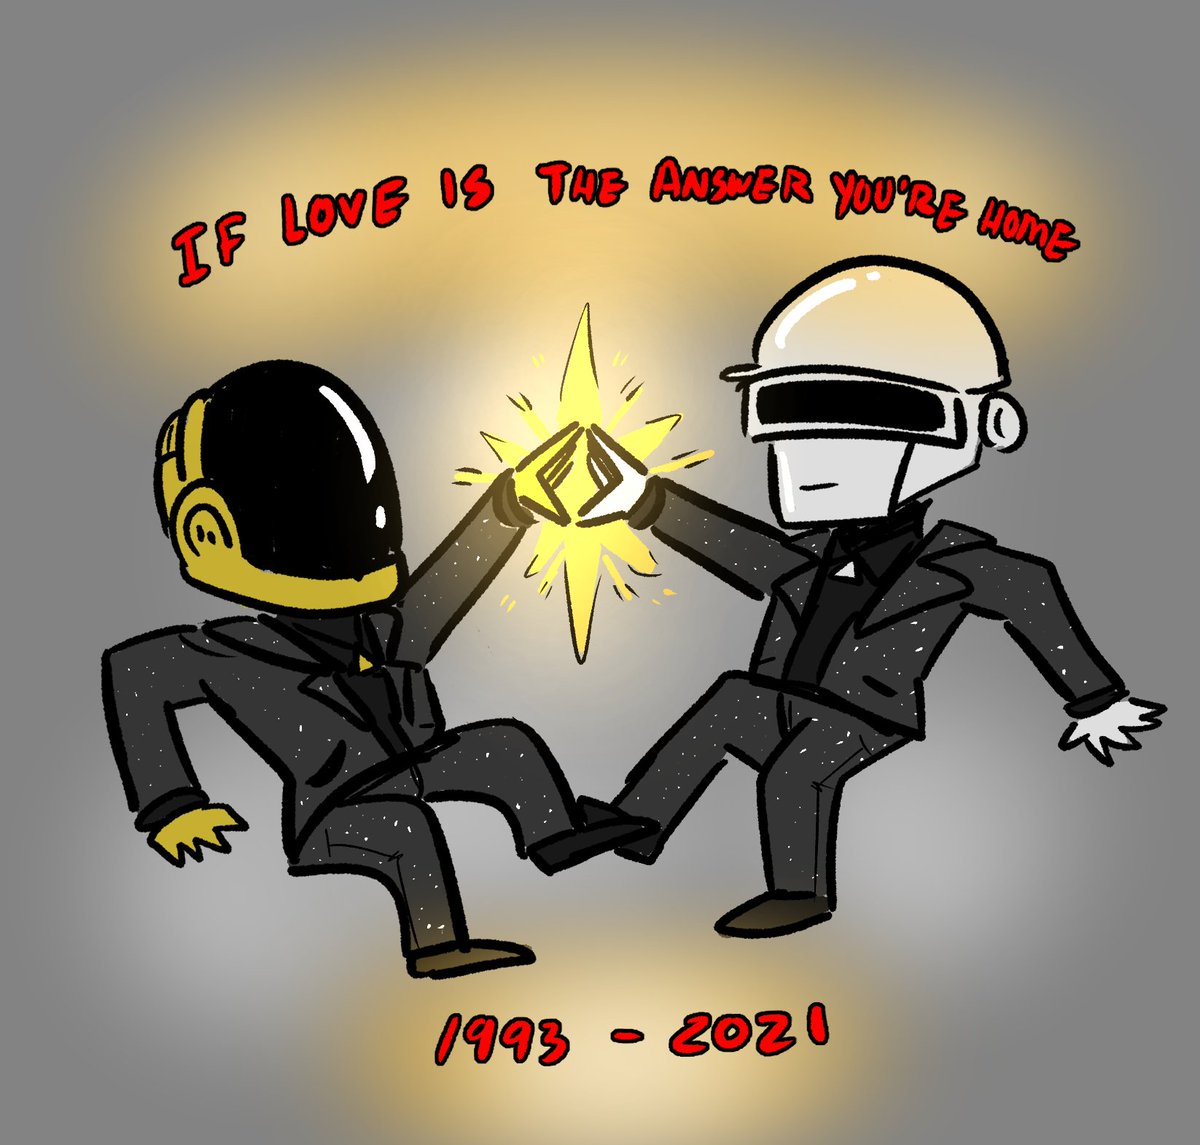 Thanks for the years you two. #DaftPunk #DaftPunkForever